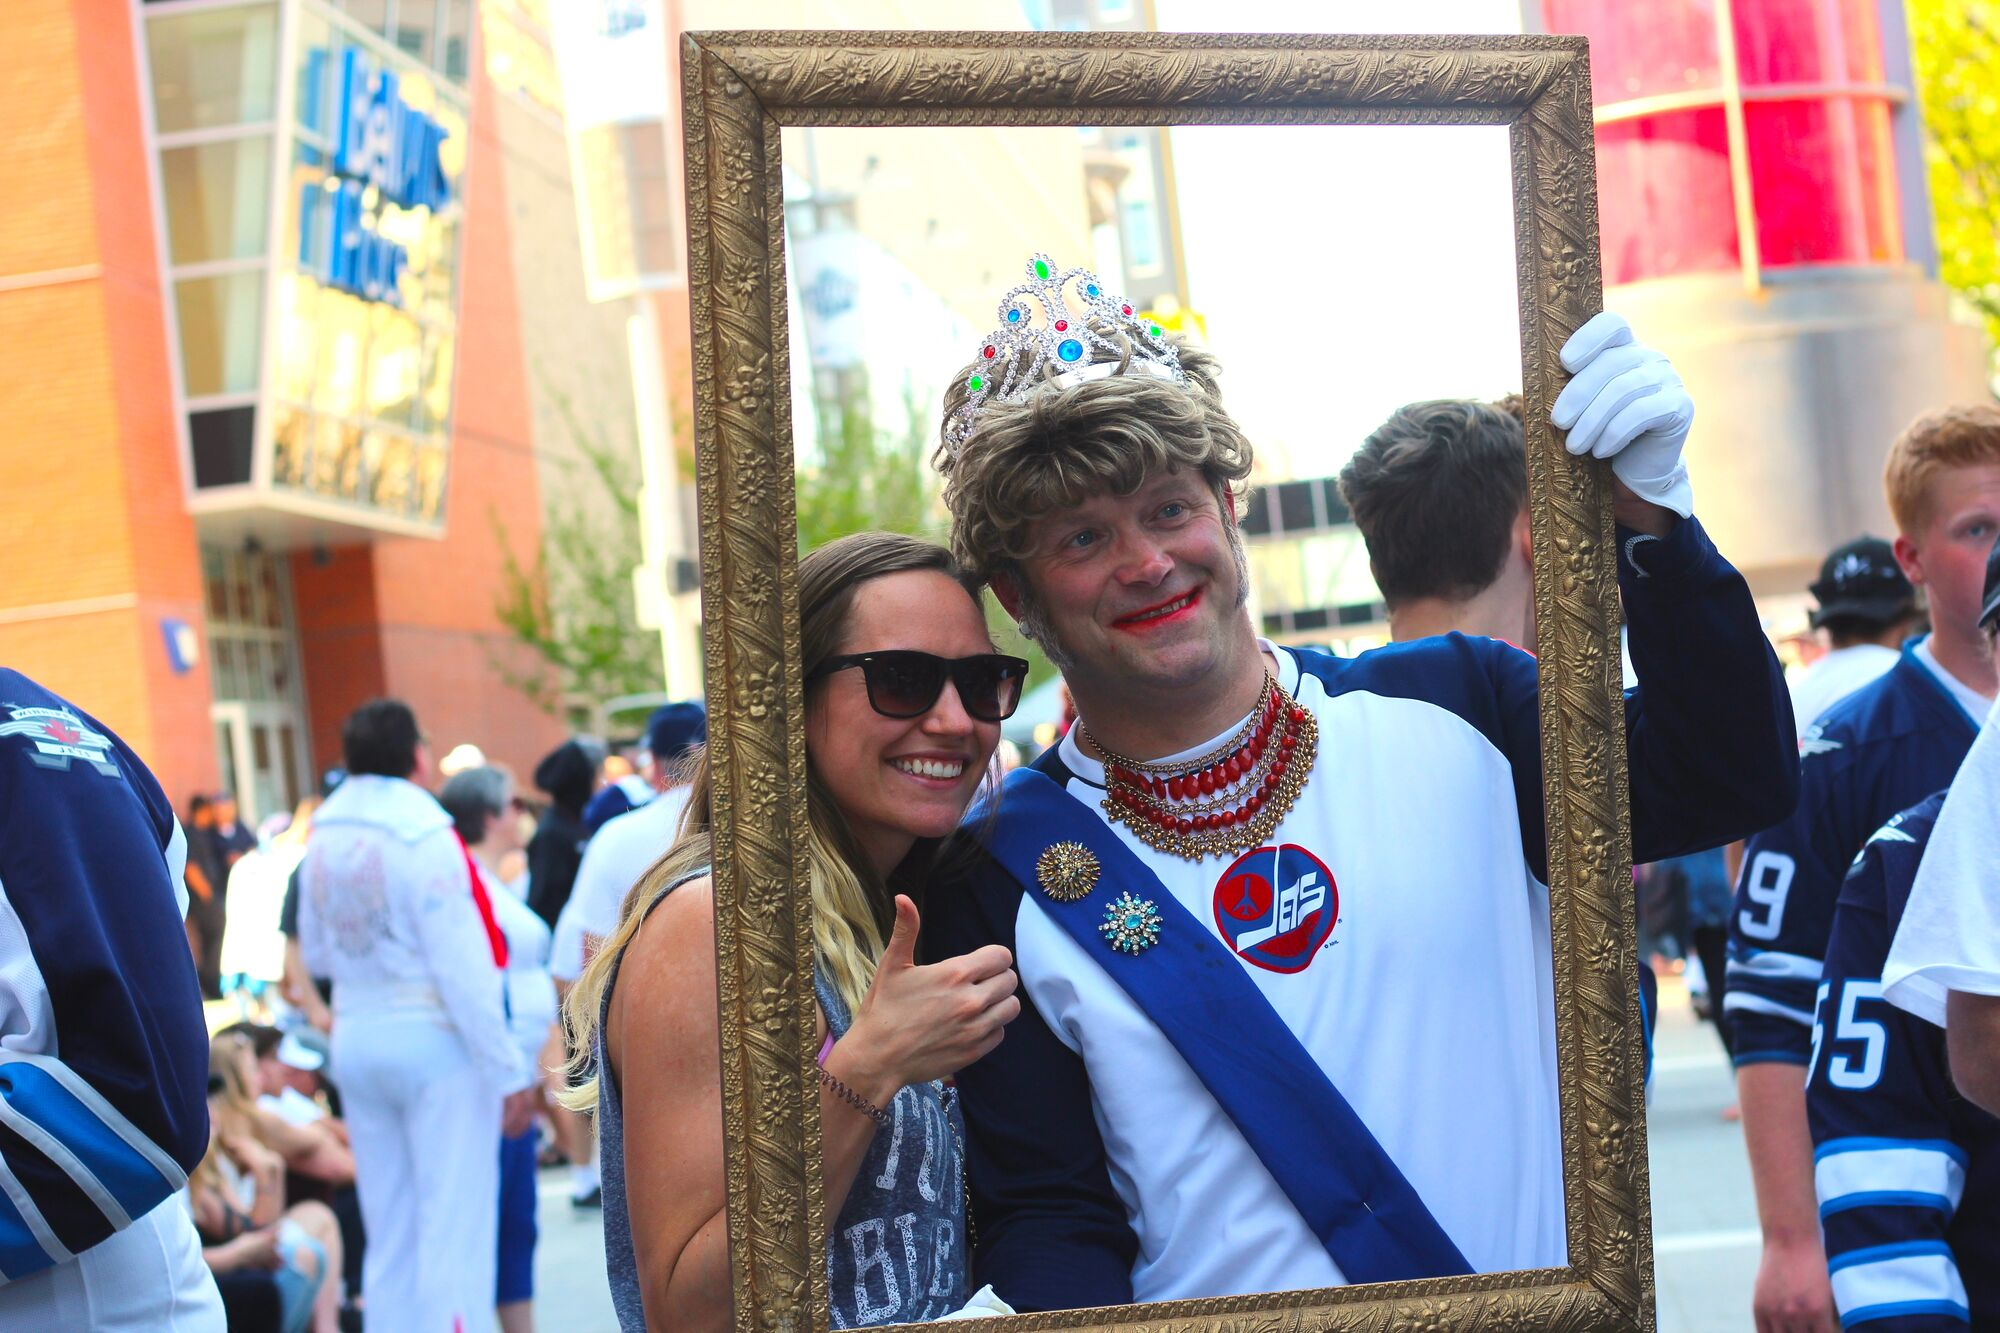 JESSICA BOTELHO-URBANSKI / WINNIPEG FREE PRESS FILES <p />  Mikaela Kroeker poses with Queen Elizabeth II (also known as Cam Scott) during the Jets' Whiteout street party on May 20.